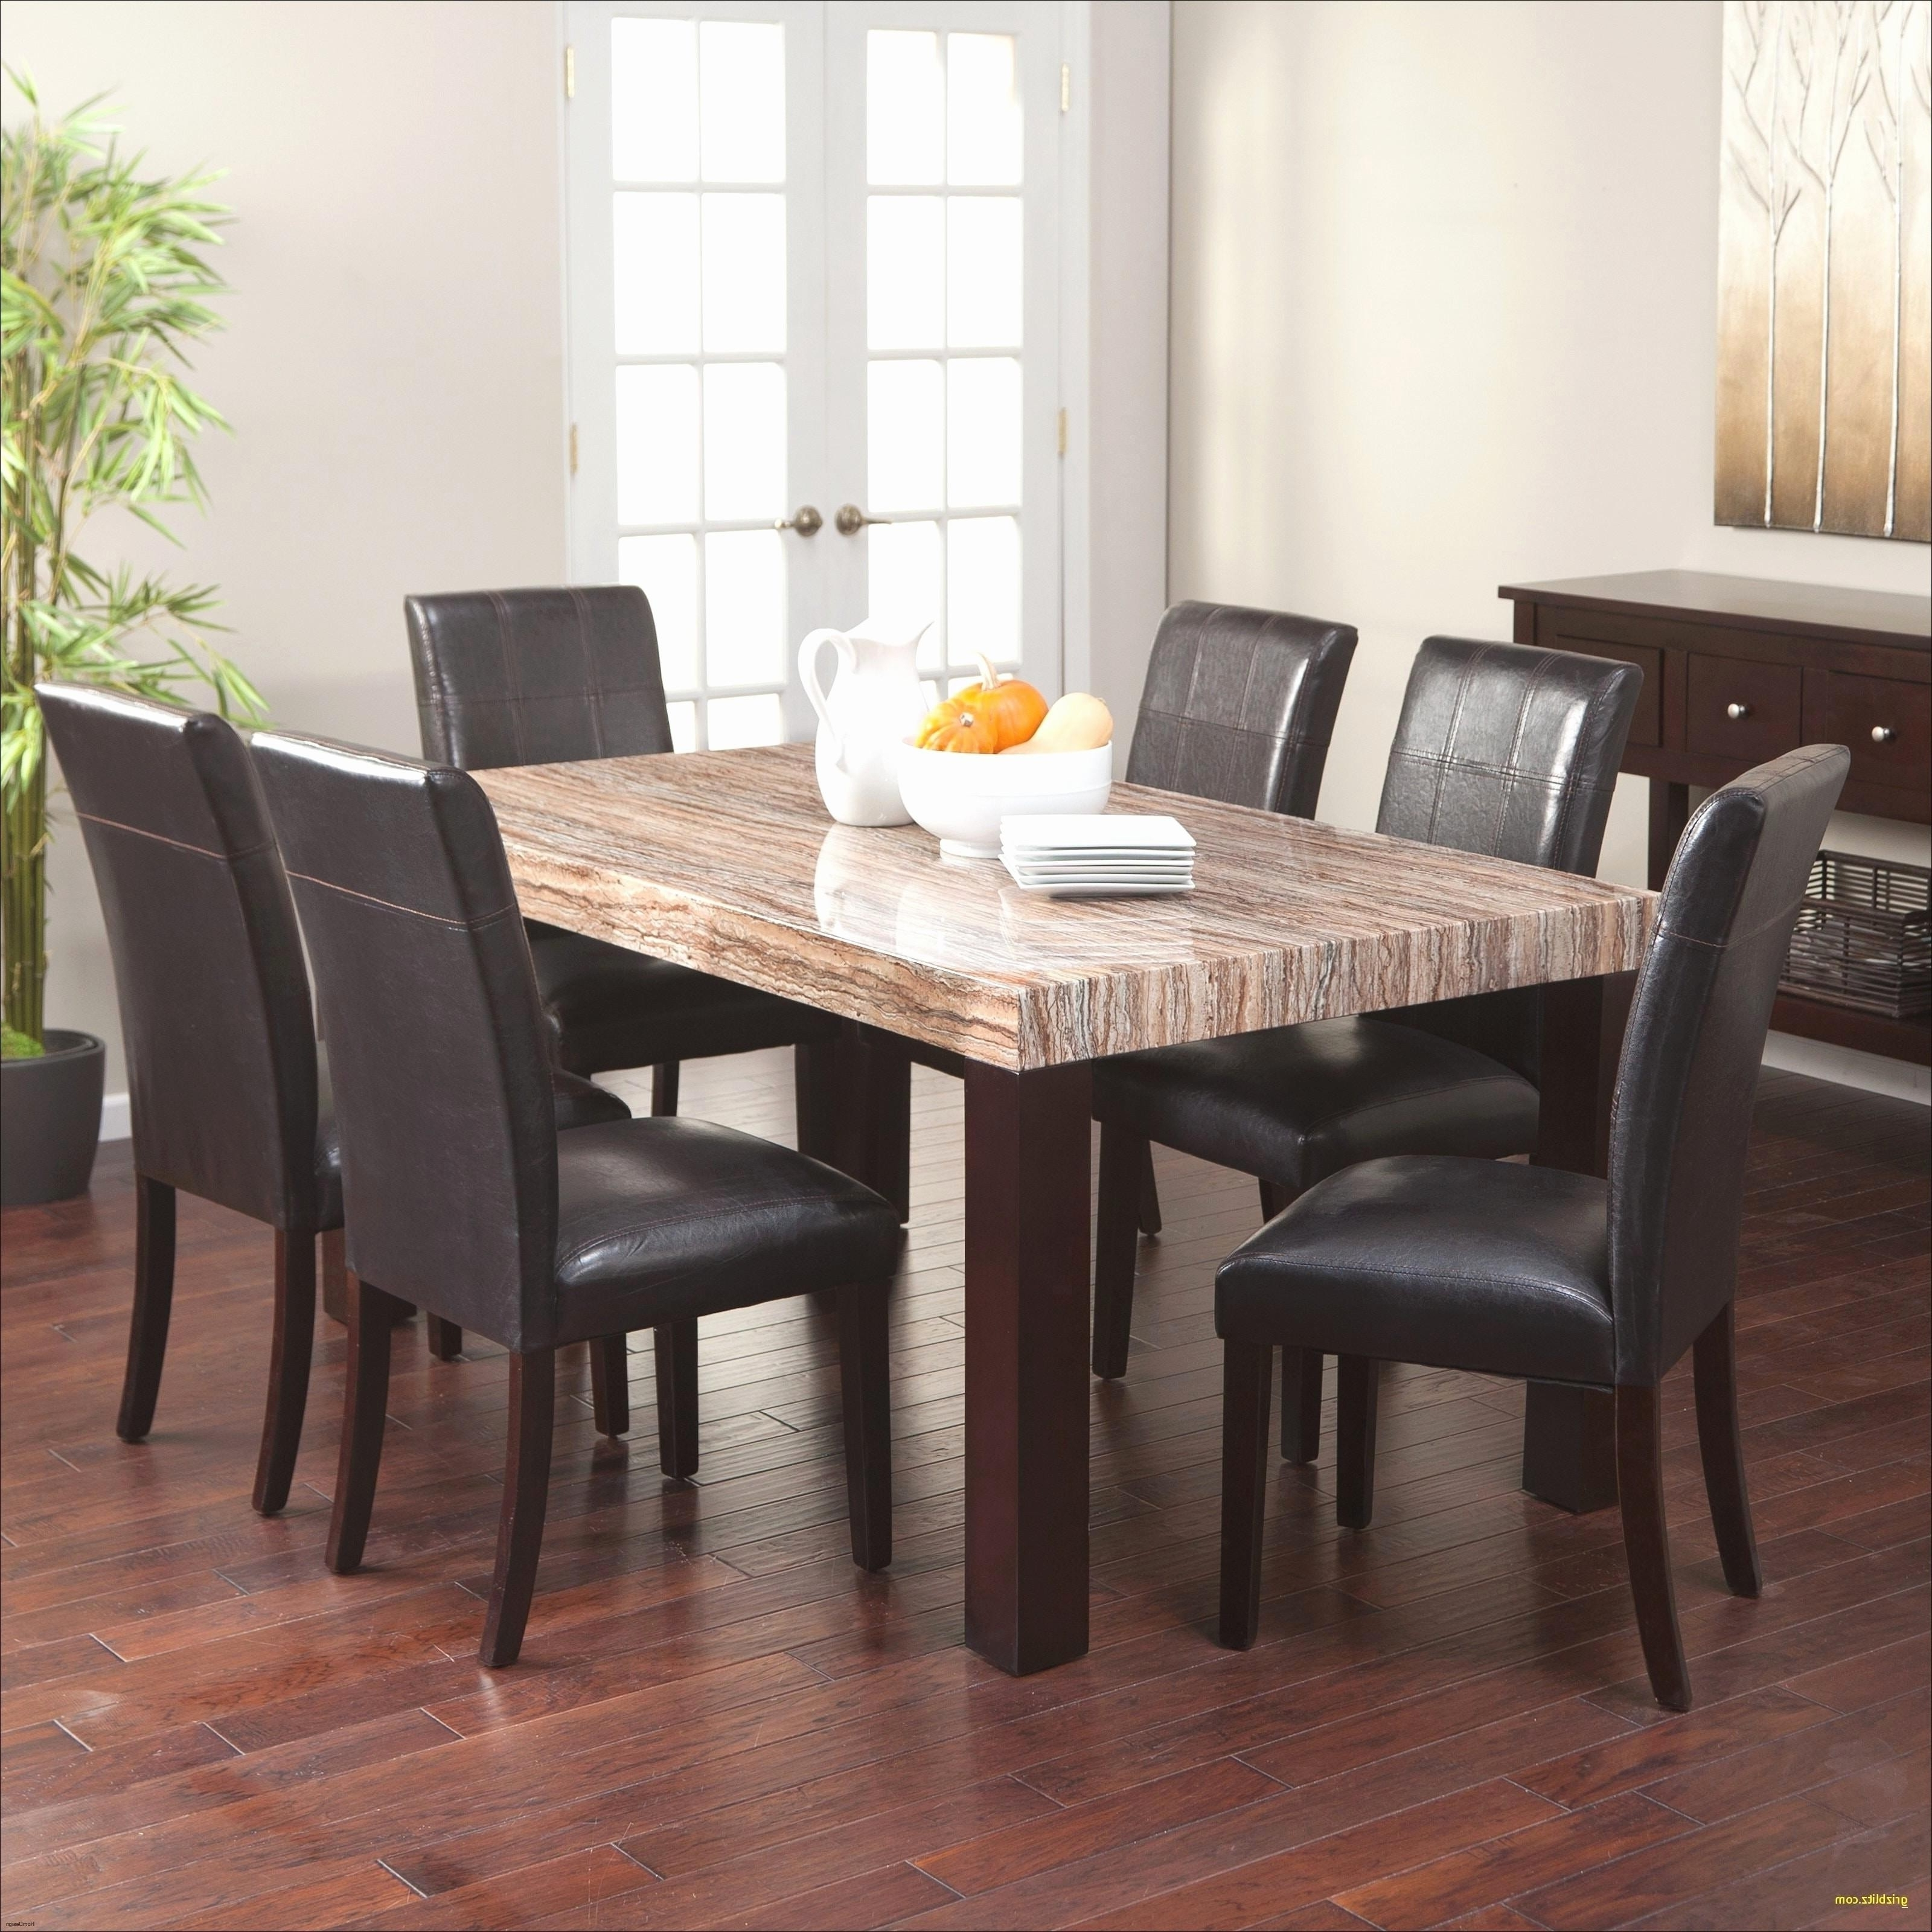 Dining Tables Sets With Regard To Fashionable Round Glass Dining Table Sets For 4 Luxury Rectangular Glass Dining (Gallery 20 of 25)